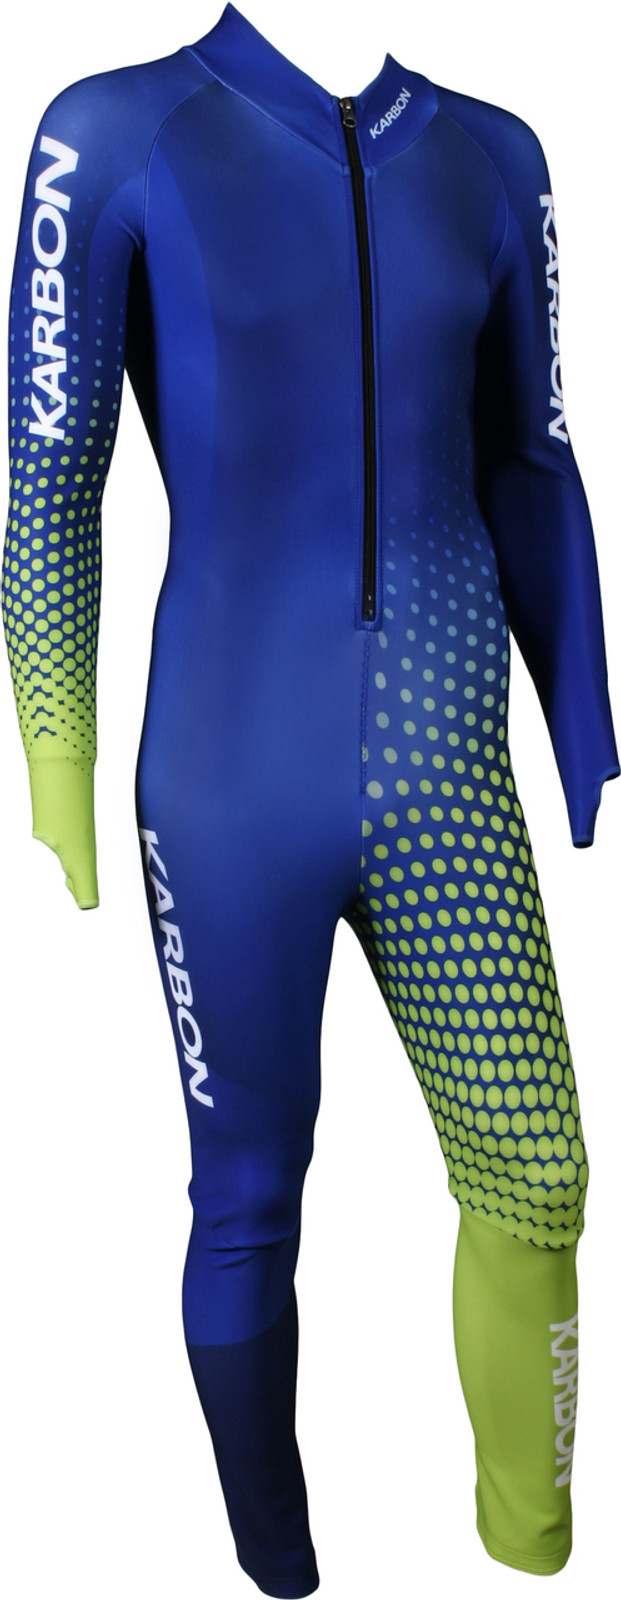 Karbon Spirit GS Race Suit 19'